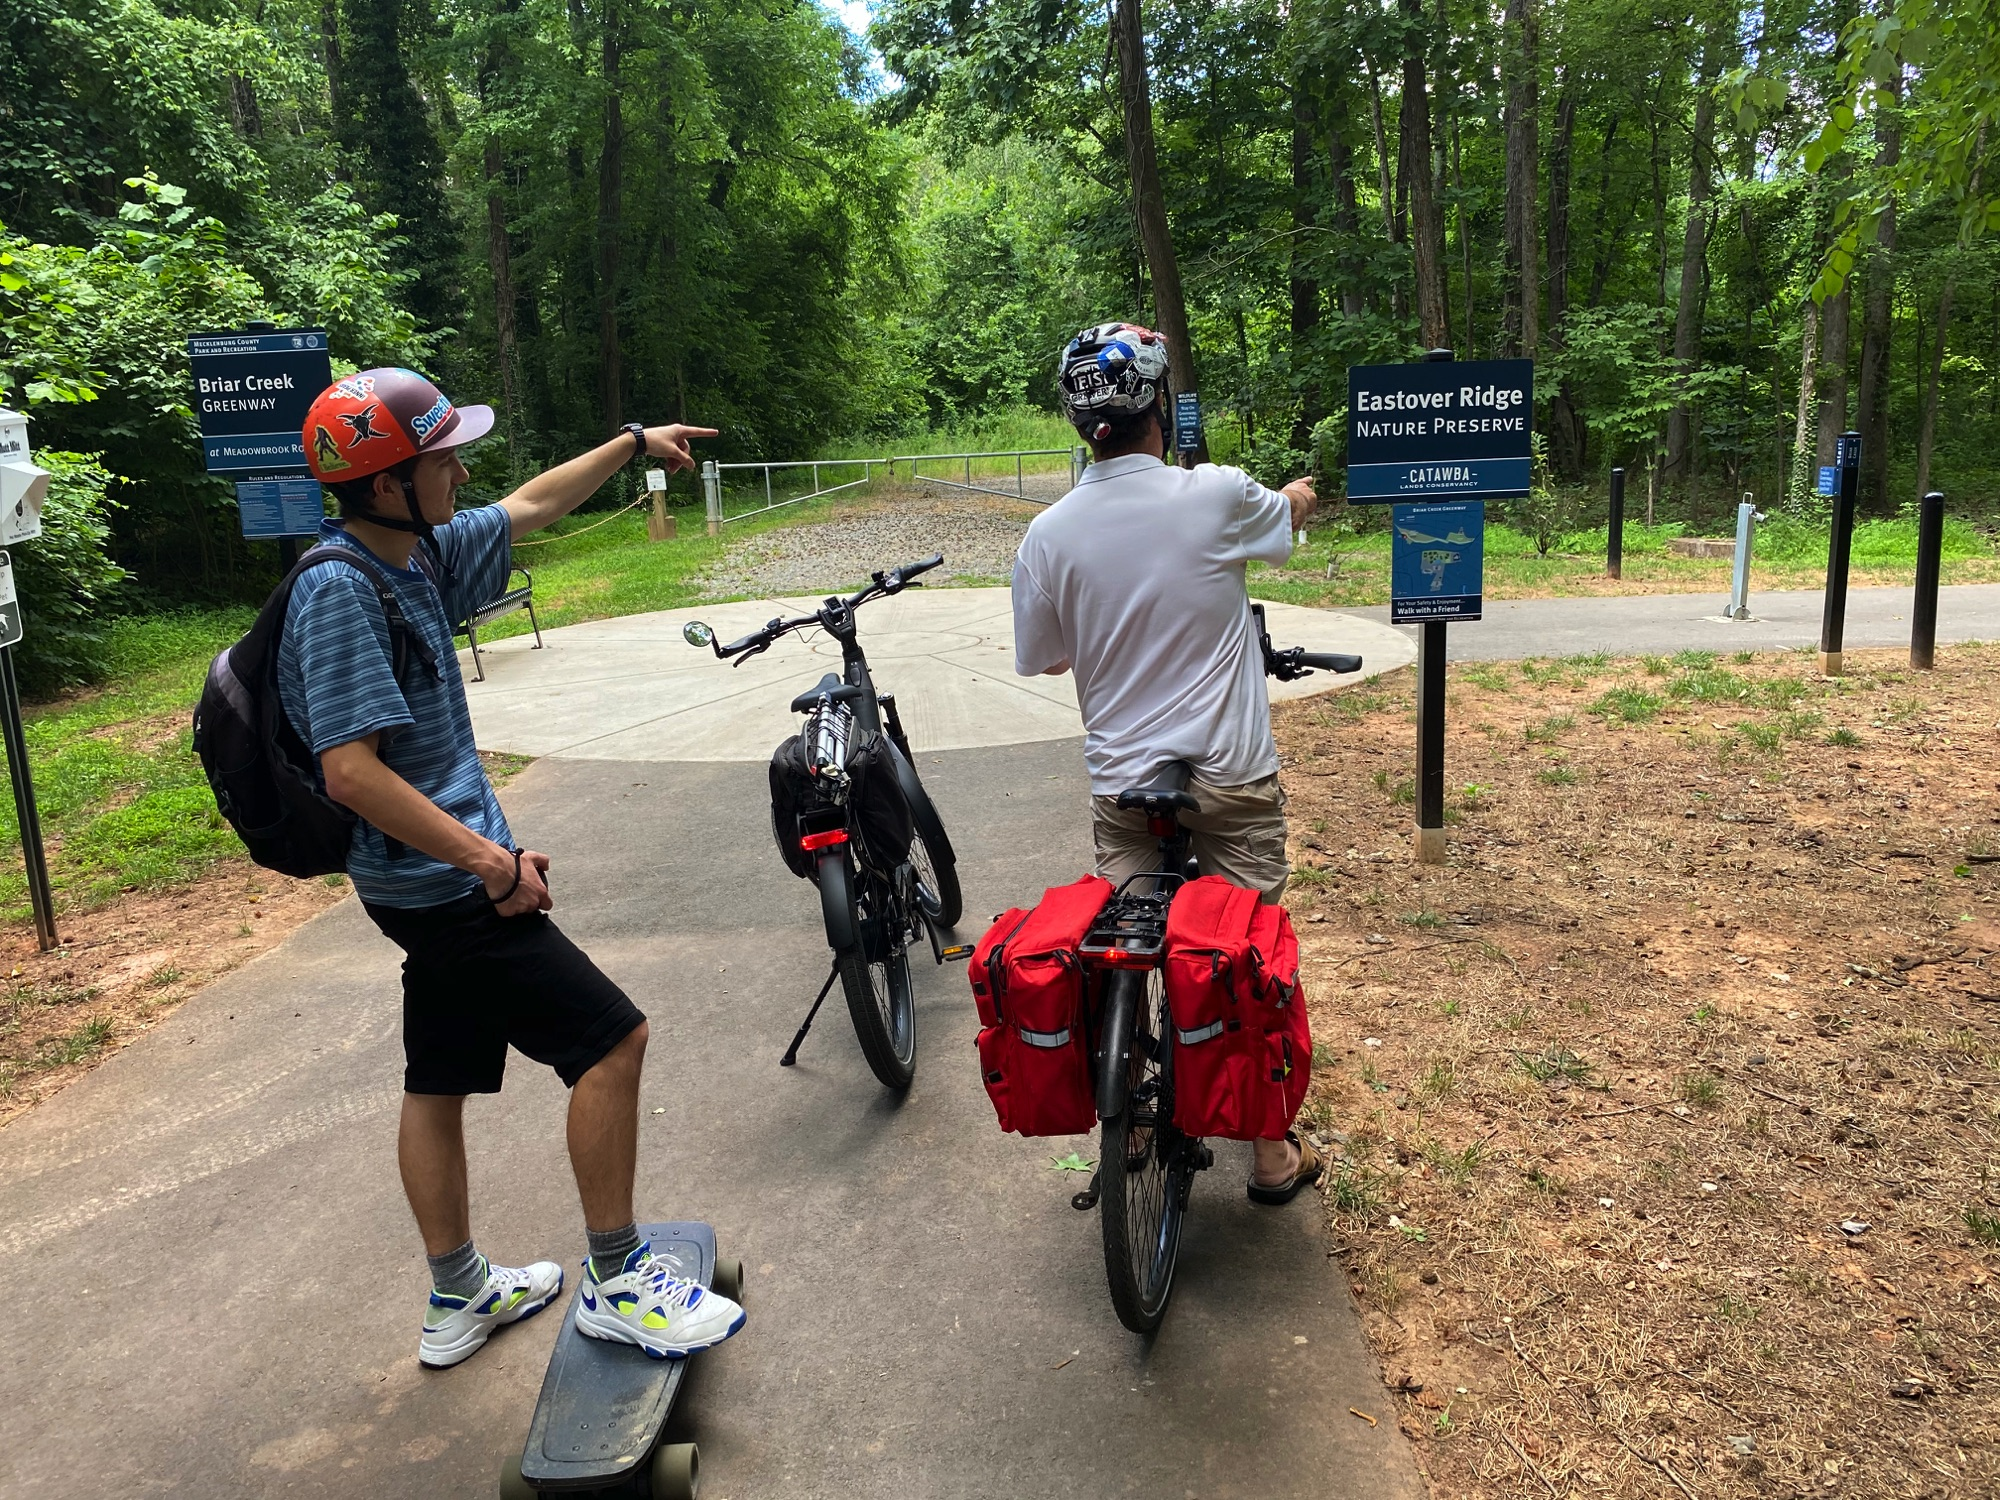 Entering Briar Creek Greenway, Charlotte NC